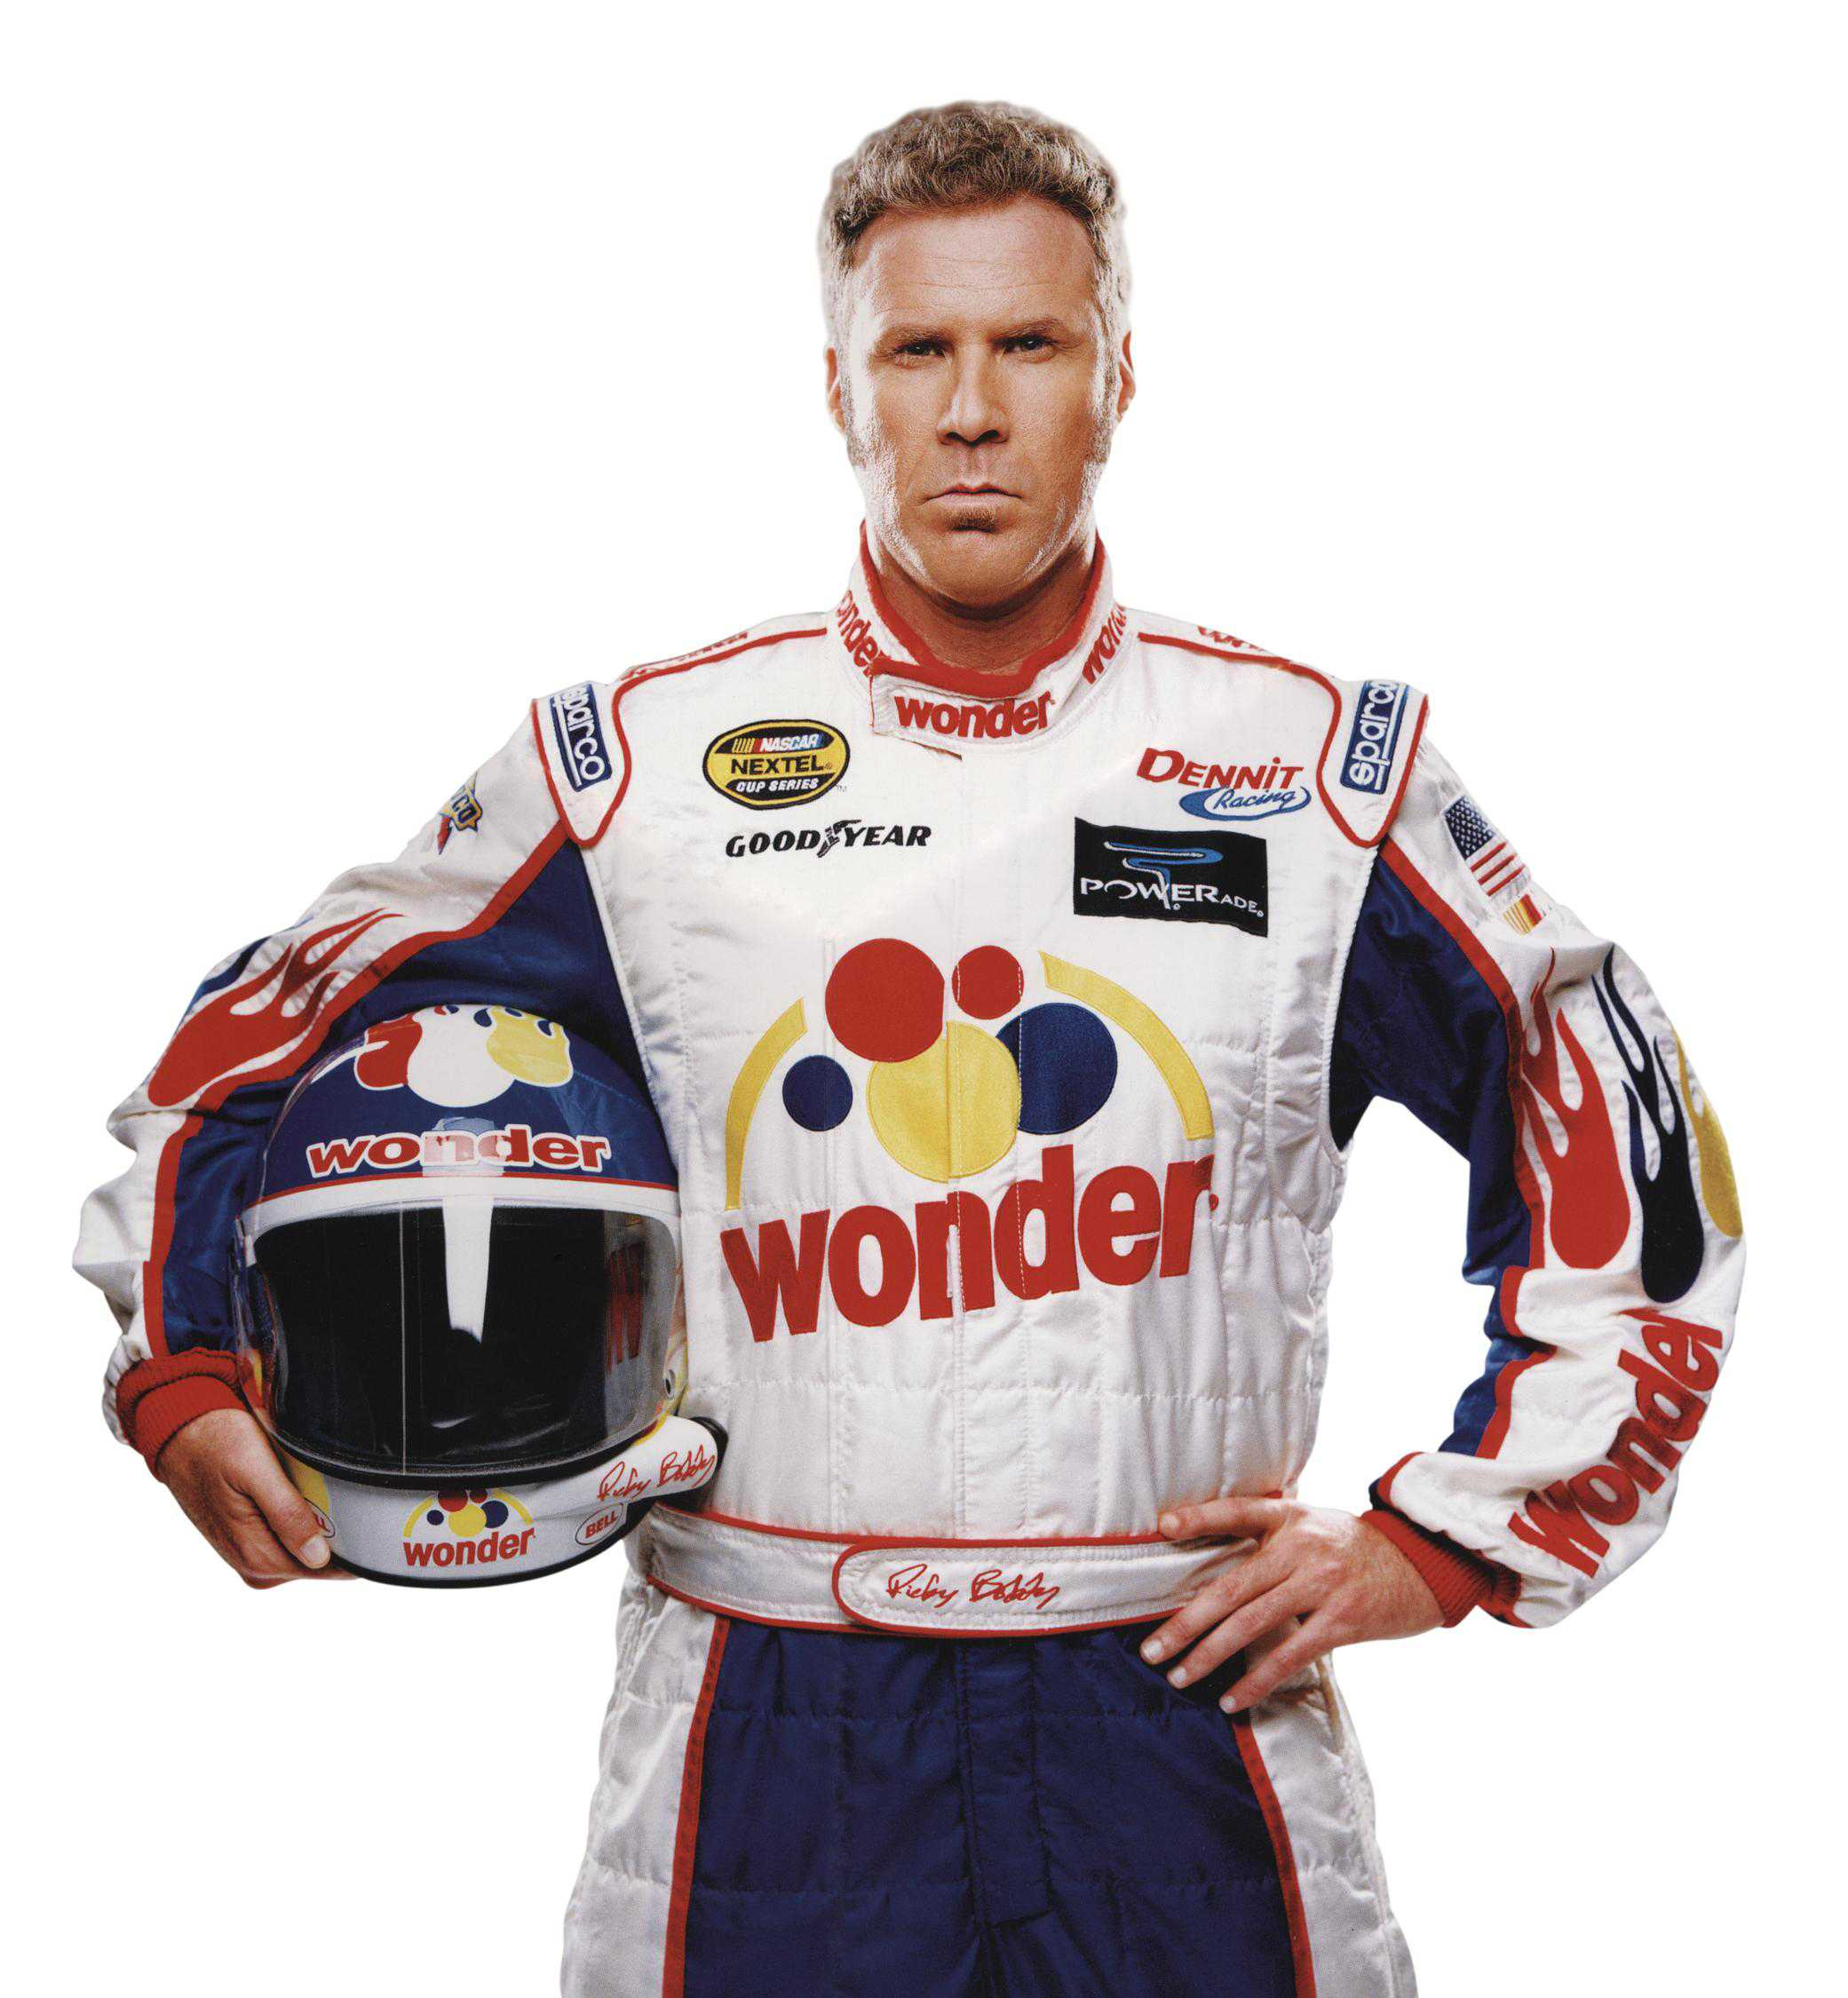 Ricky Bobby Race Car Driver